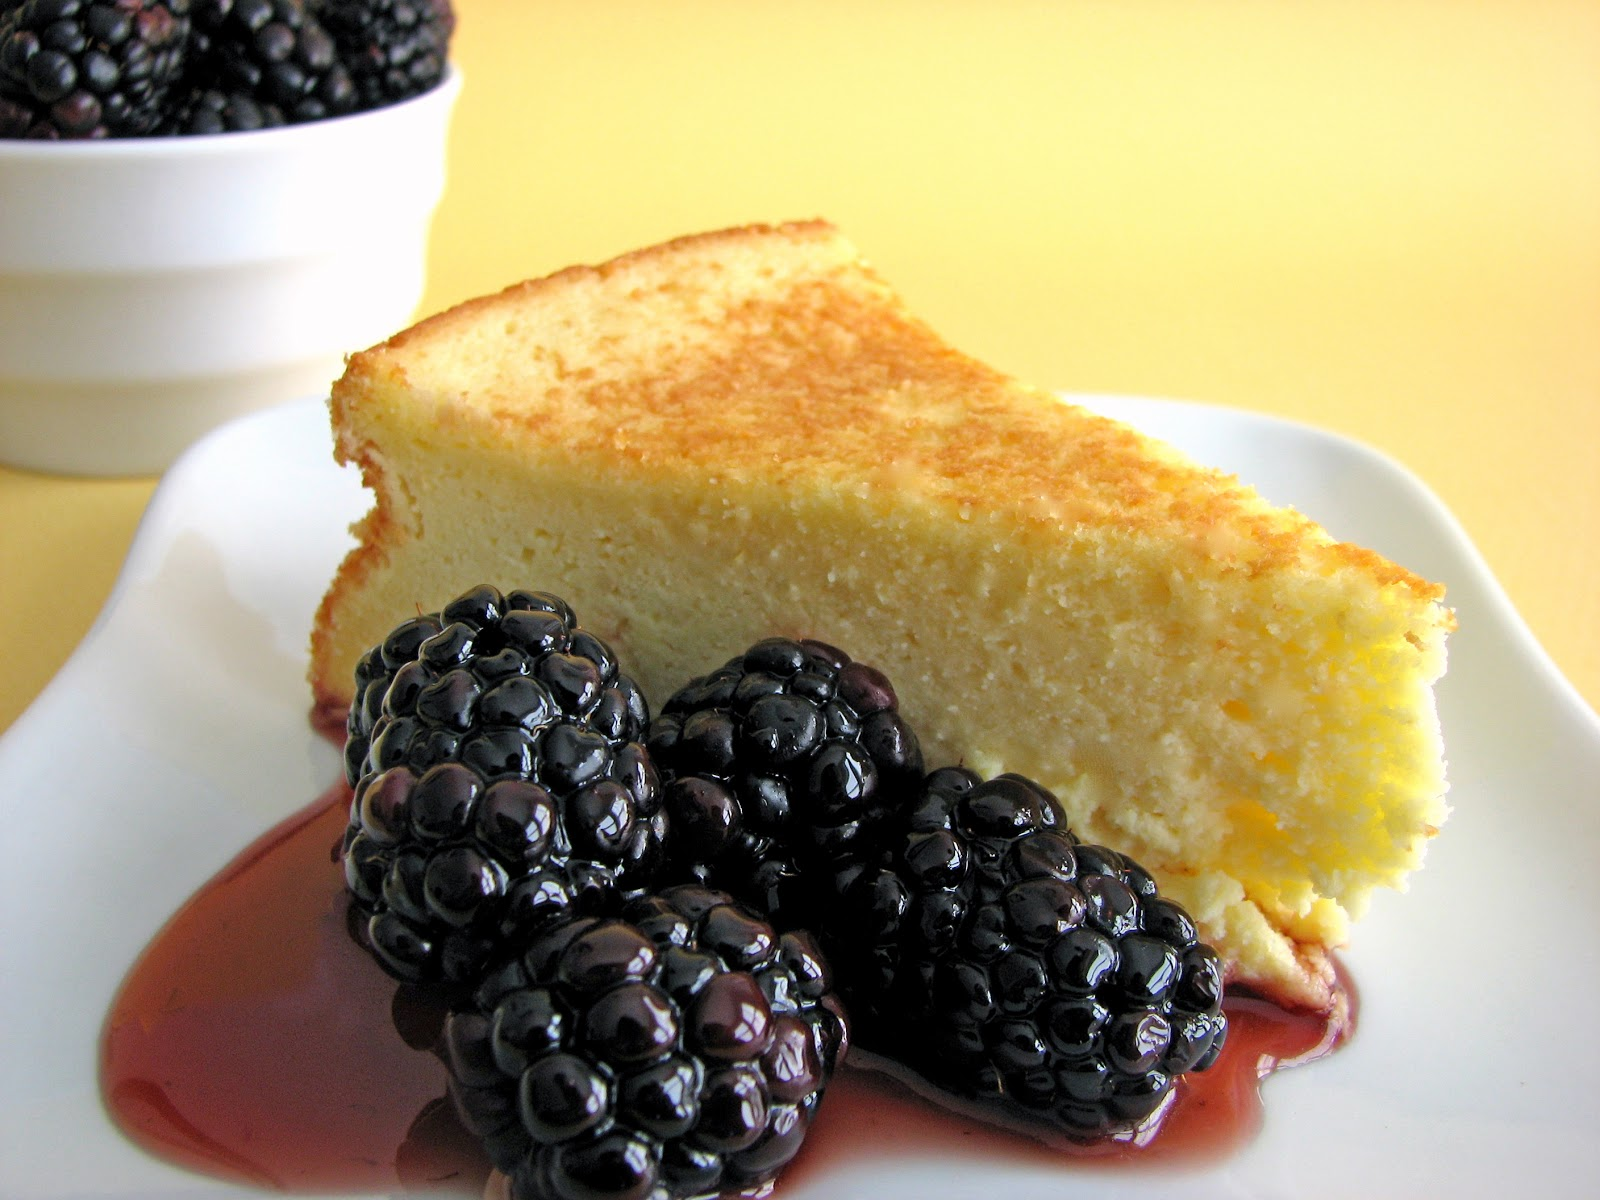 pastry studio: goat cheese cake with berries